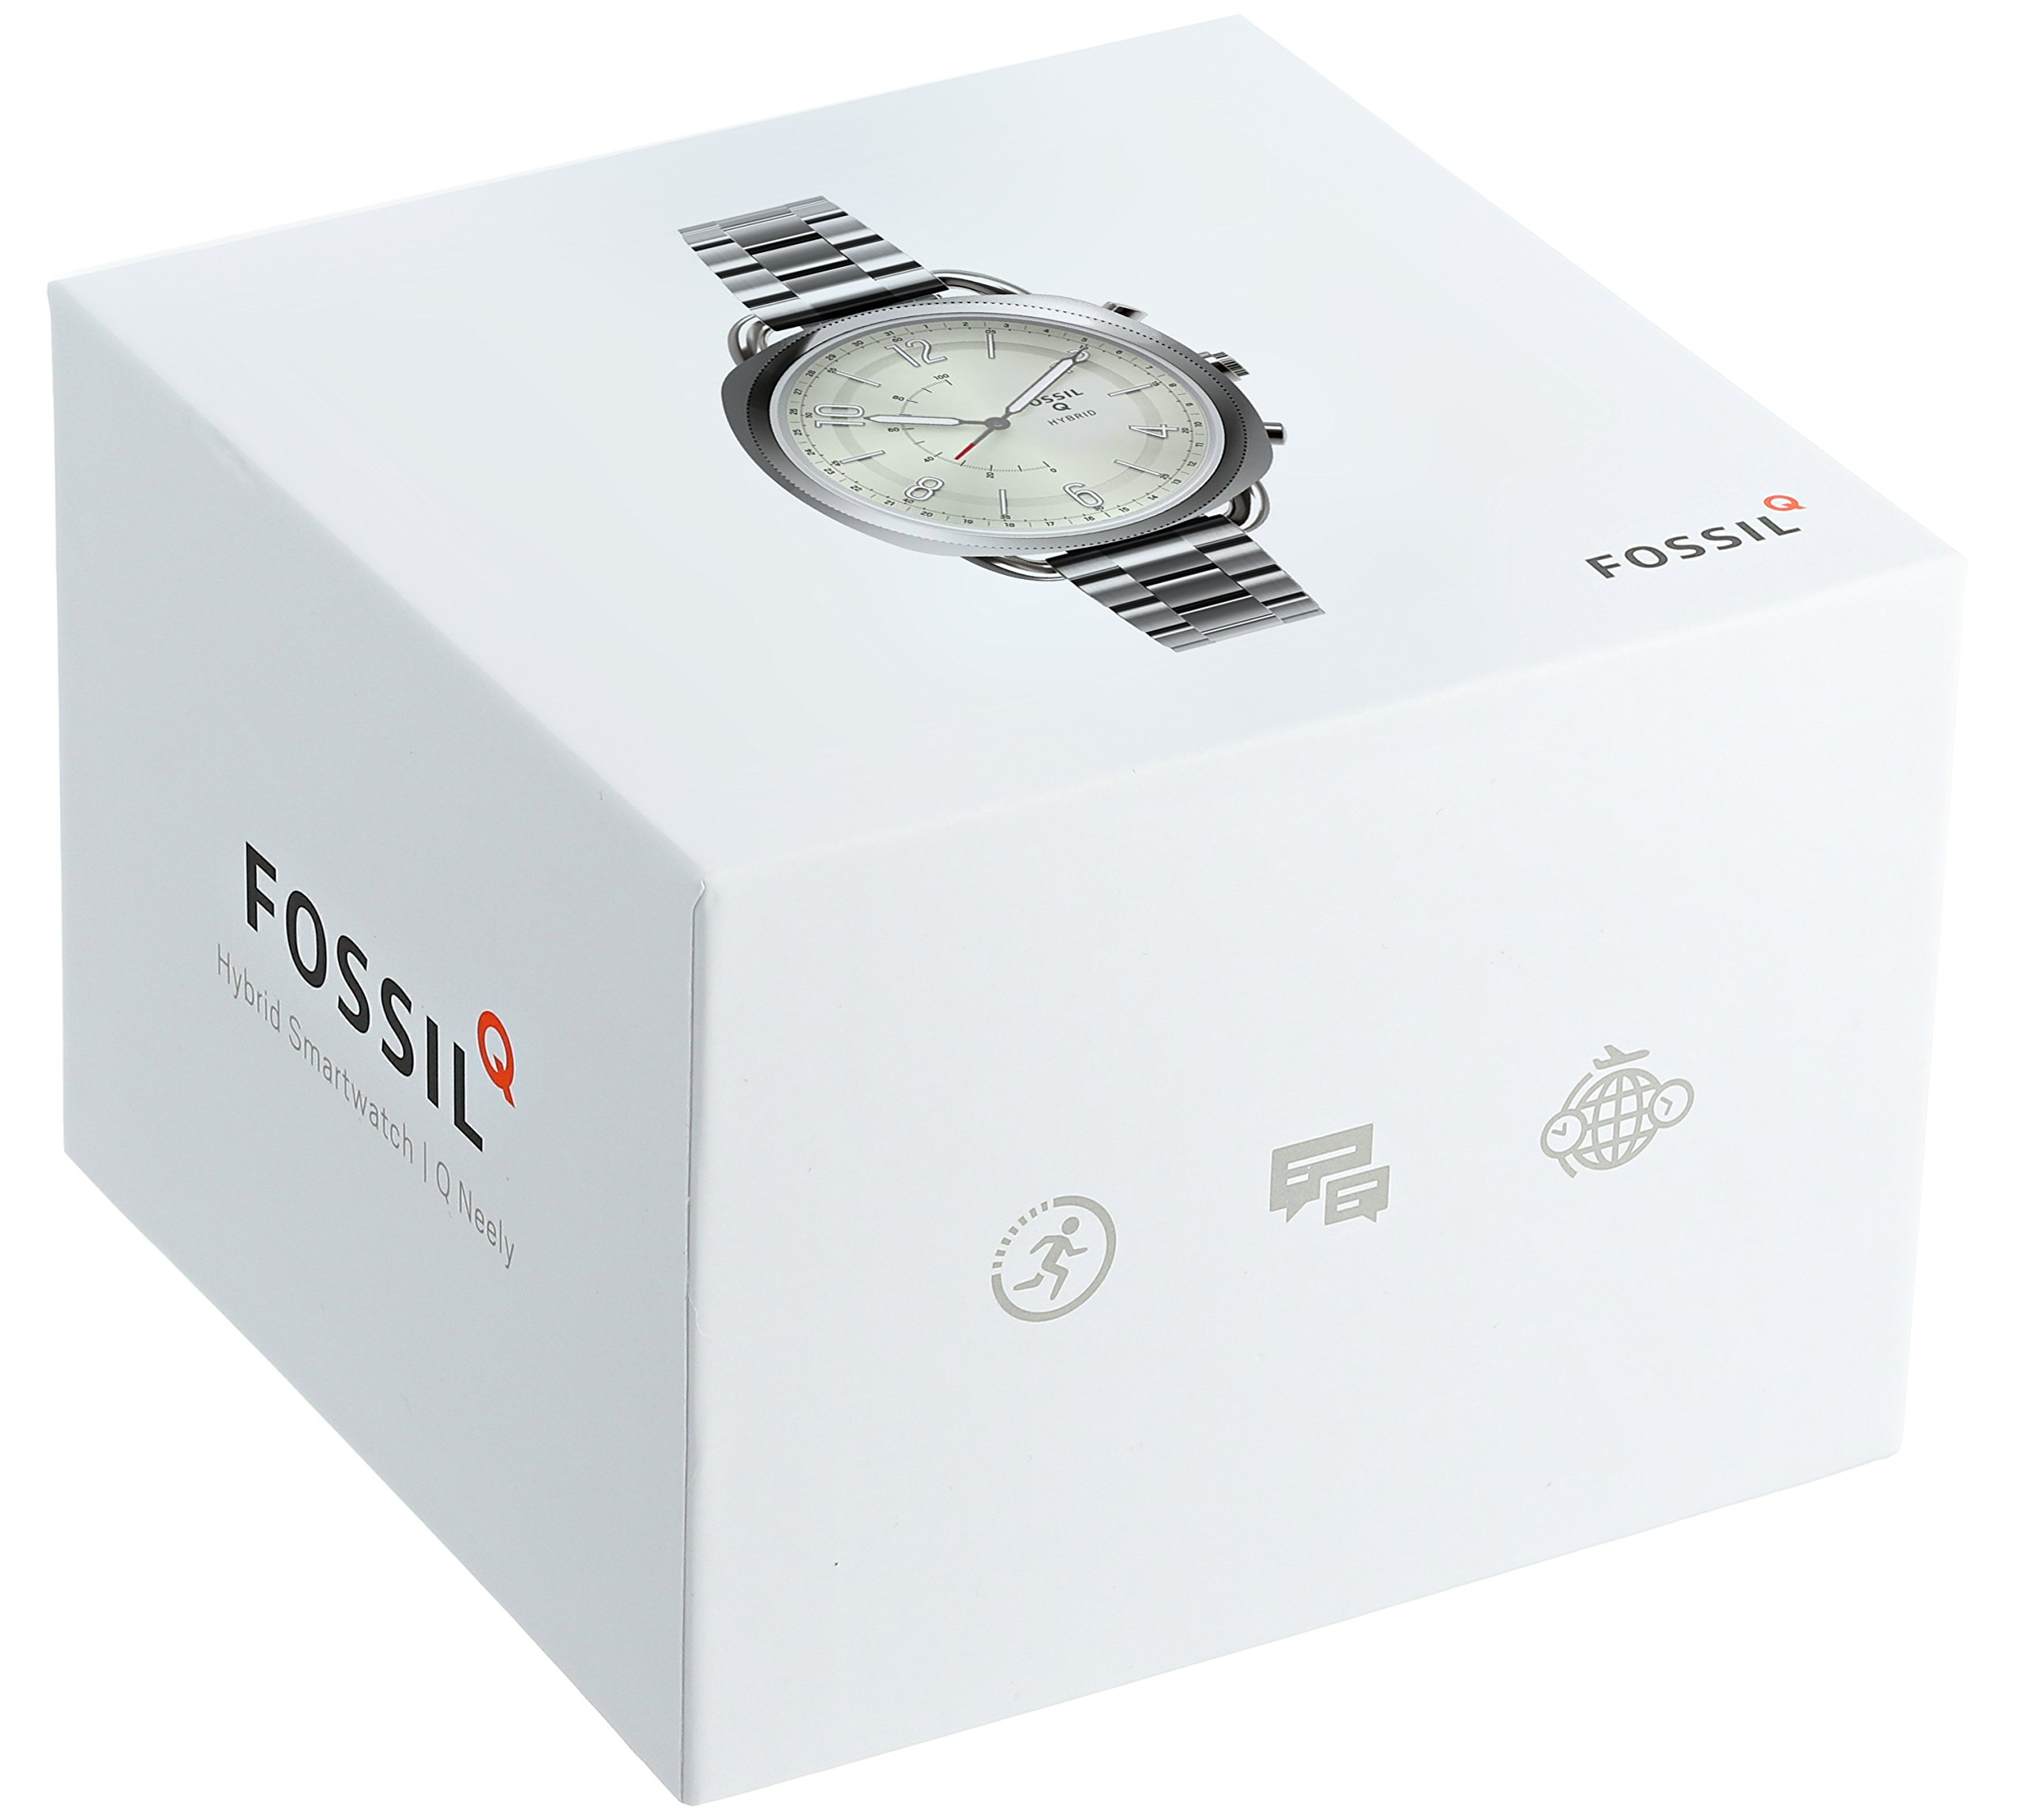 Fossil Hybrid Smartwatch - Q Accomplice Stainless Steel FTW1202 by Fossil (Image #4)